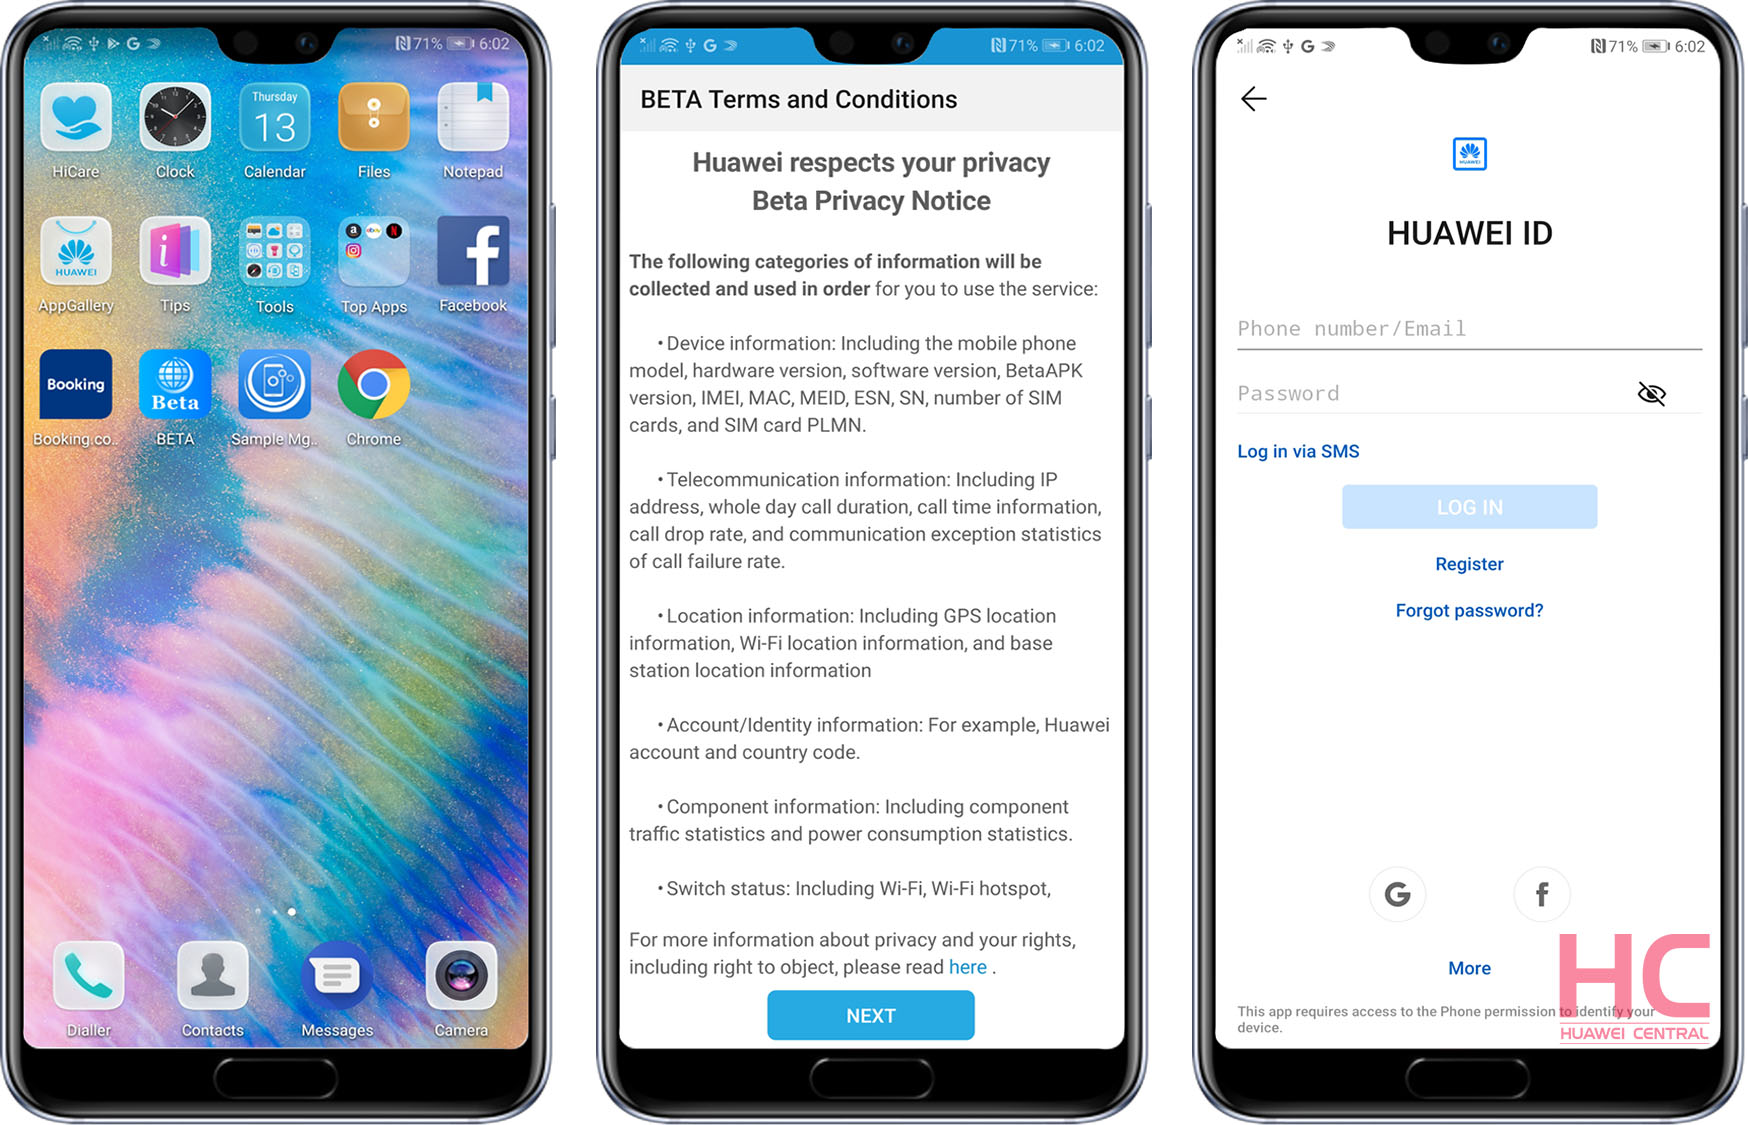 How to join the EMUI Beta user program - Huawei Central